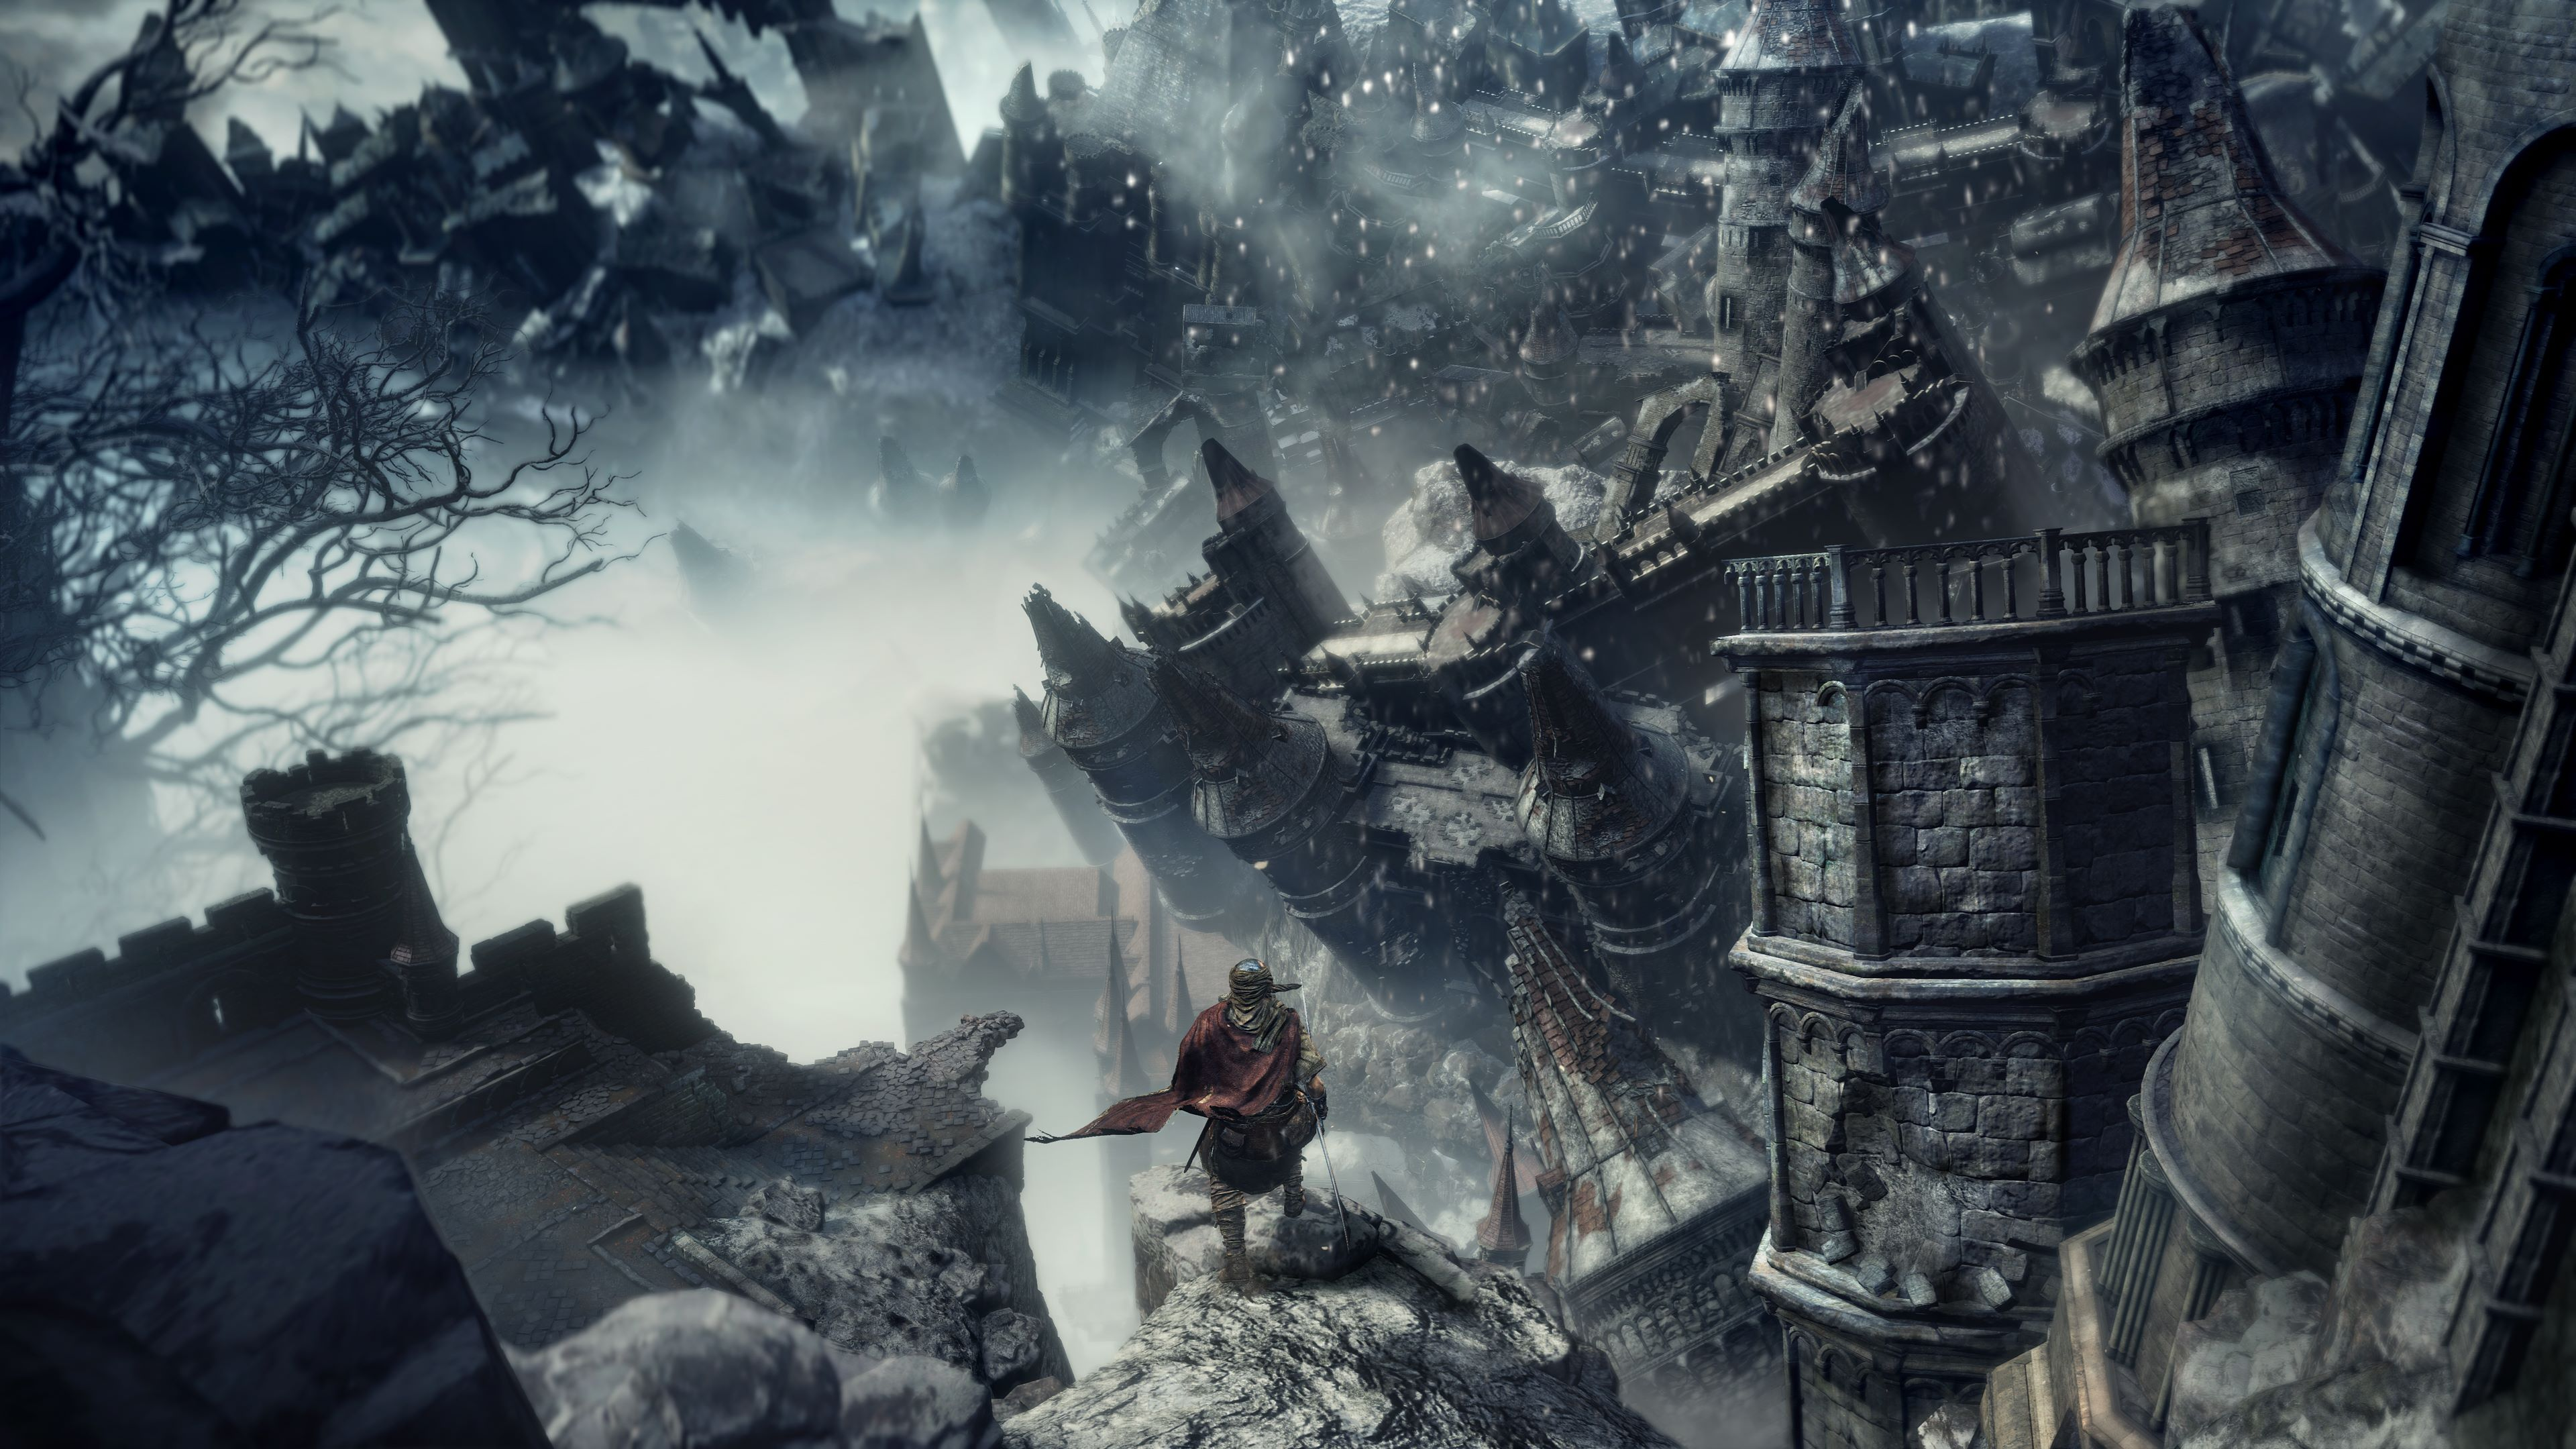 dark_souls_3_ringed_city_screen_end_of_the_world_1